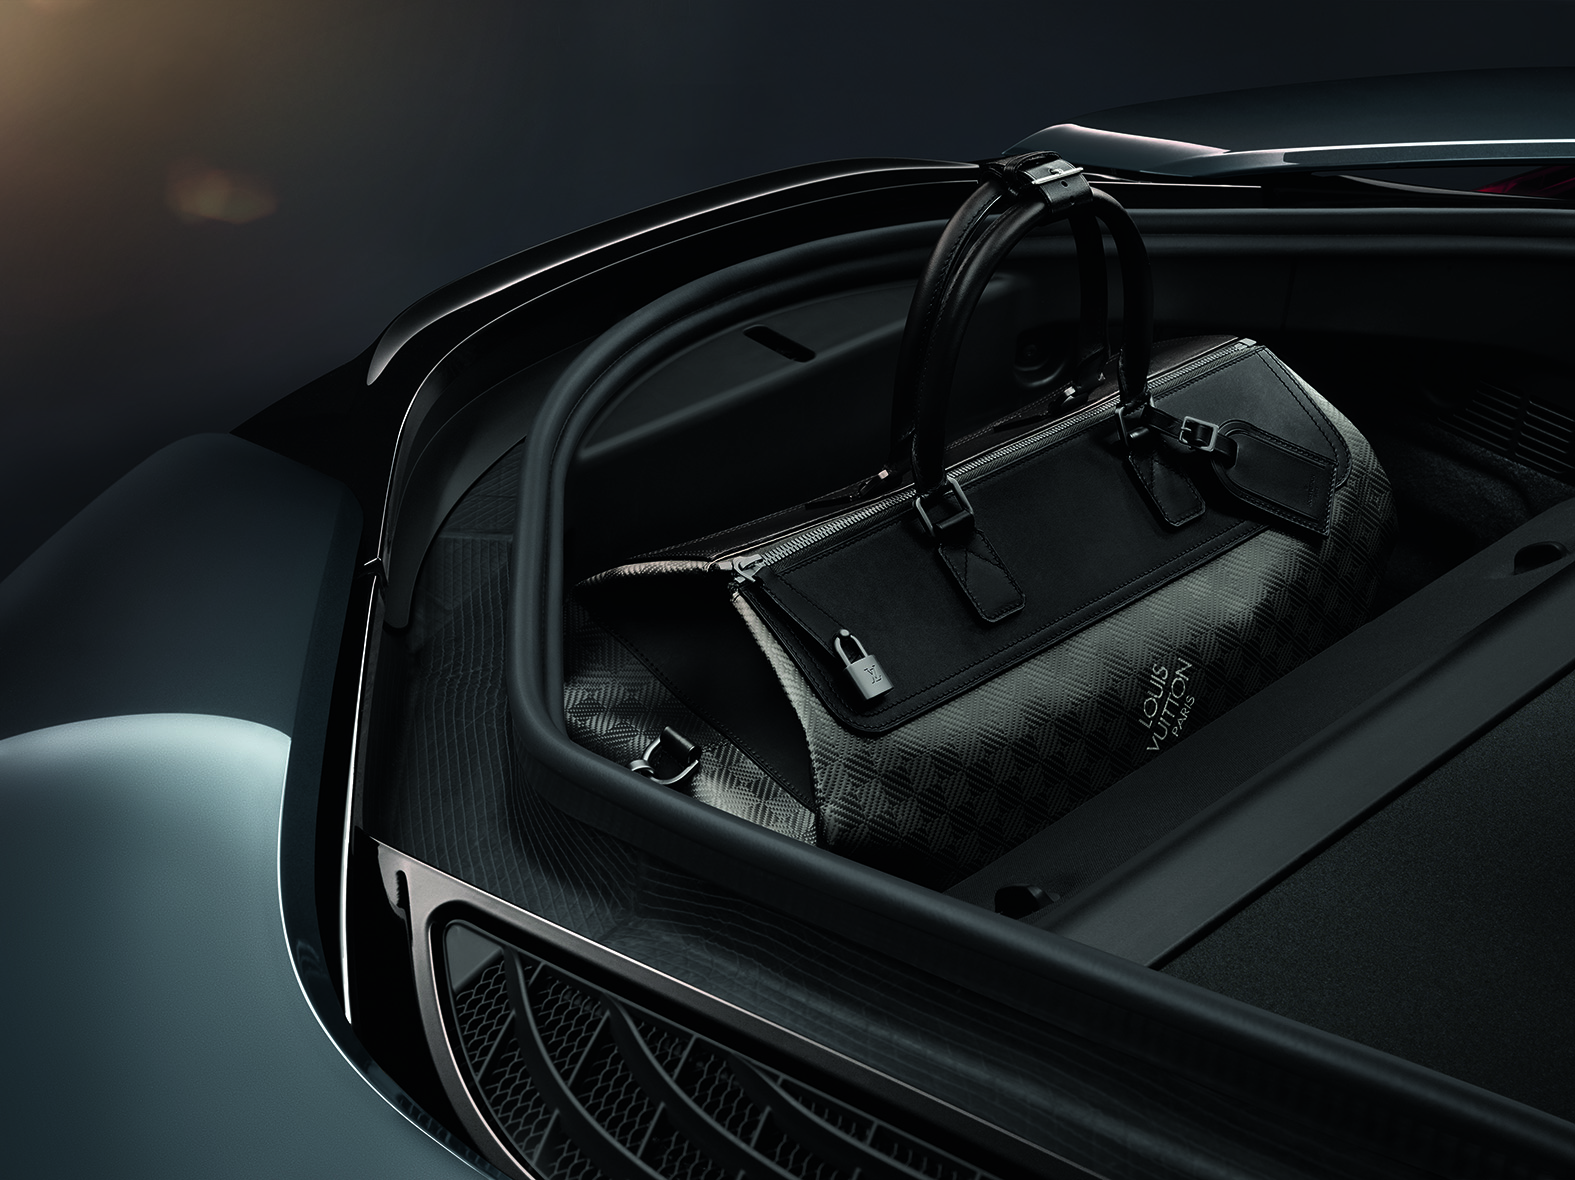 BMW I8 Top Speed >> Louis Vuitton BMW i8 Collection - cars & life | cars ...